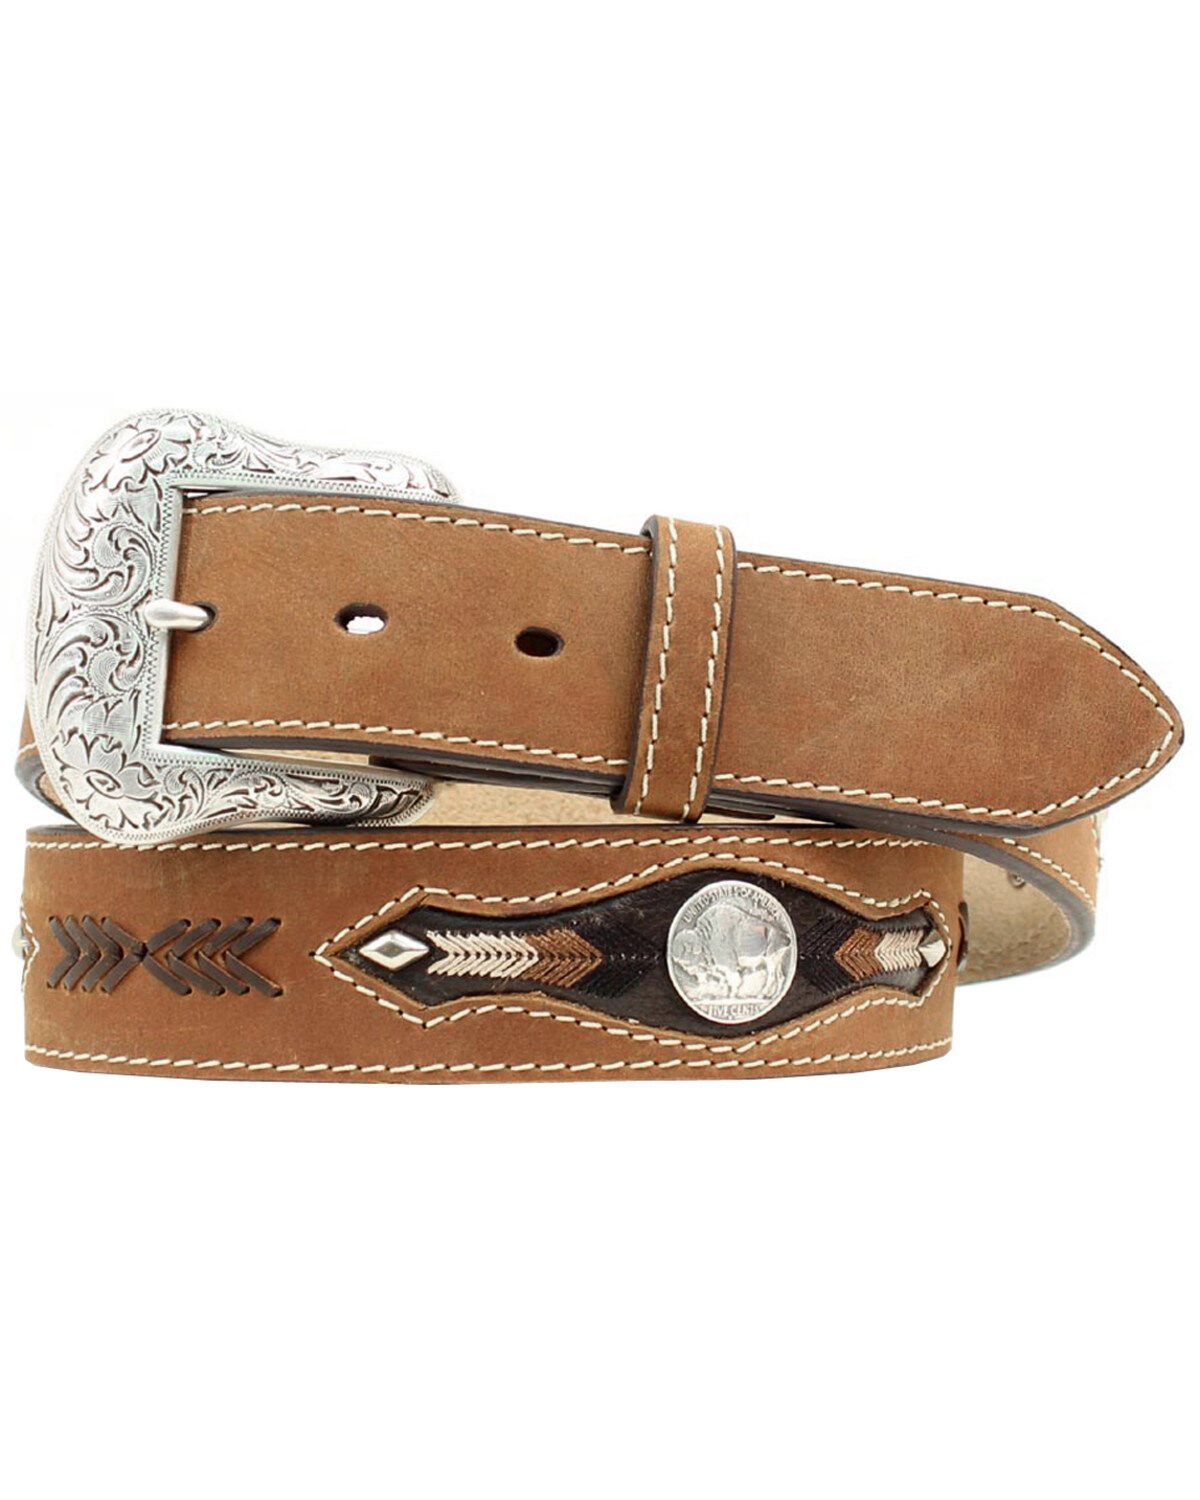 Fort Worth Berry Conchos Western Leather Scalloped Belt